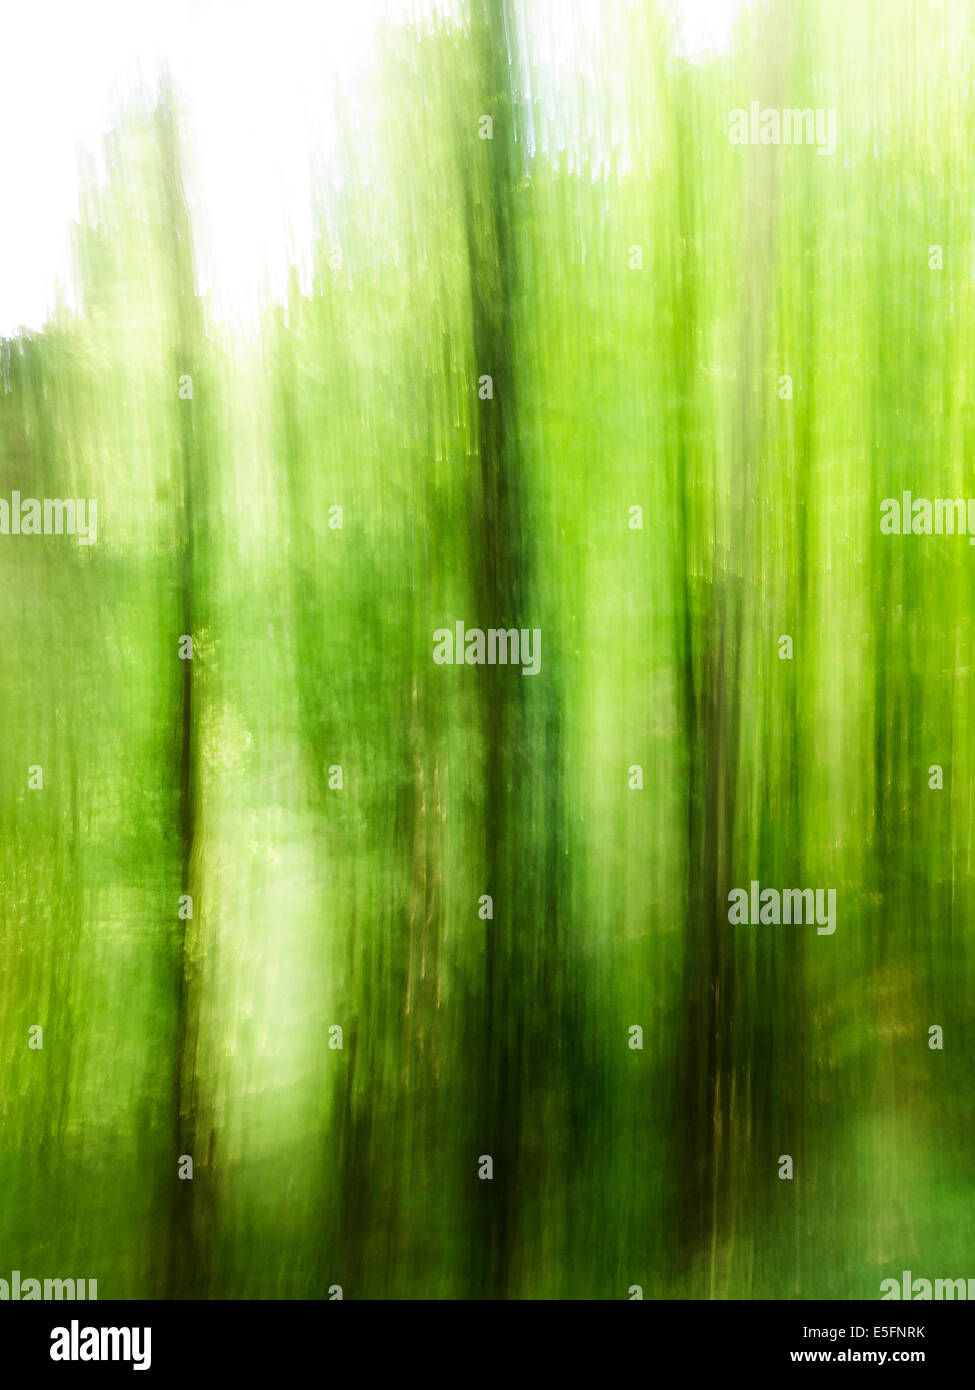 Green blurry - Stock Image